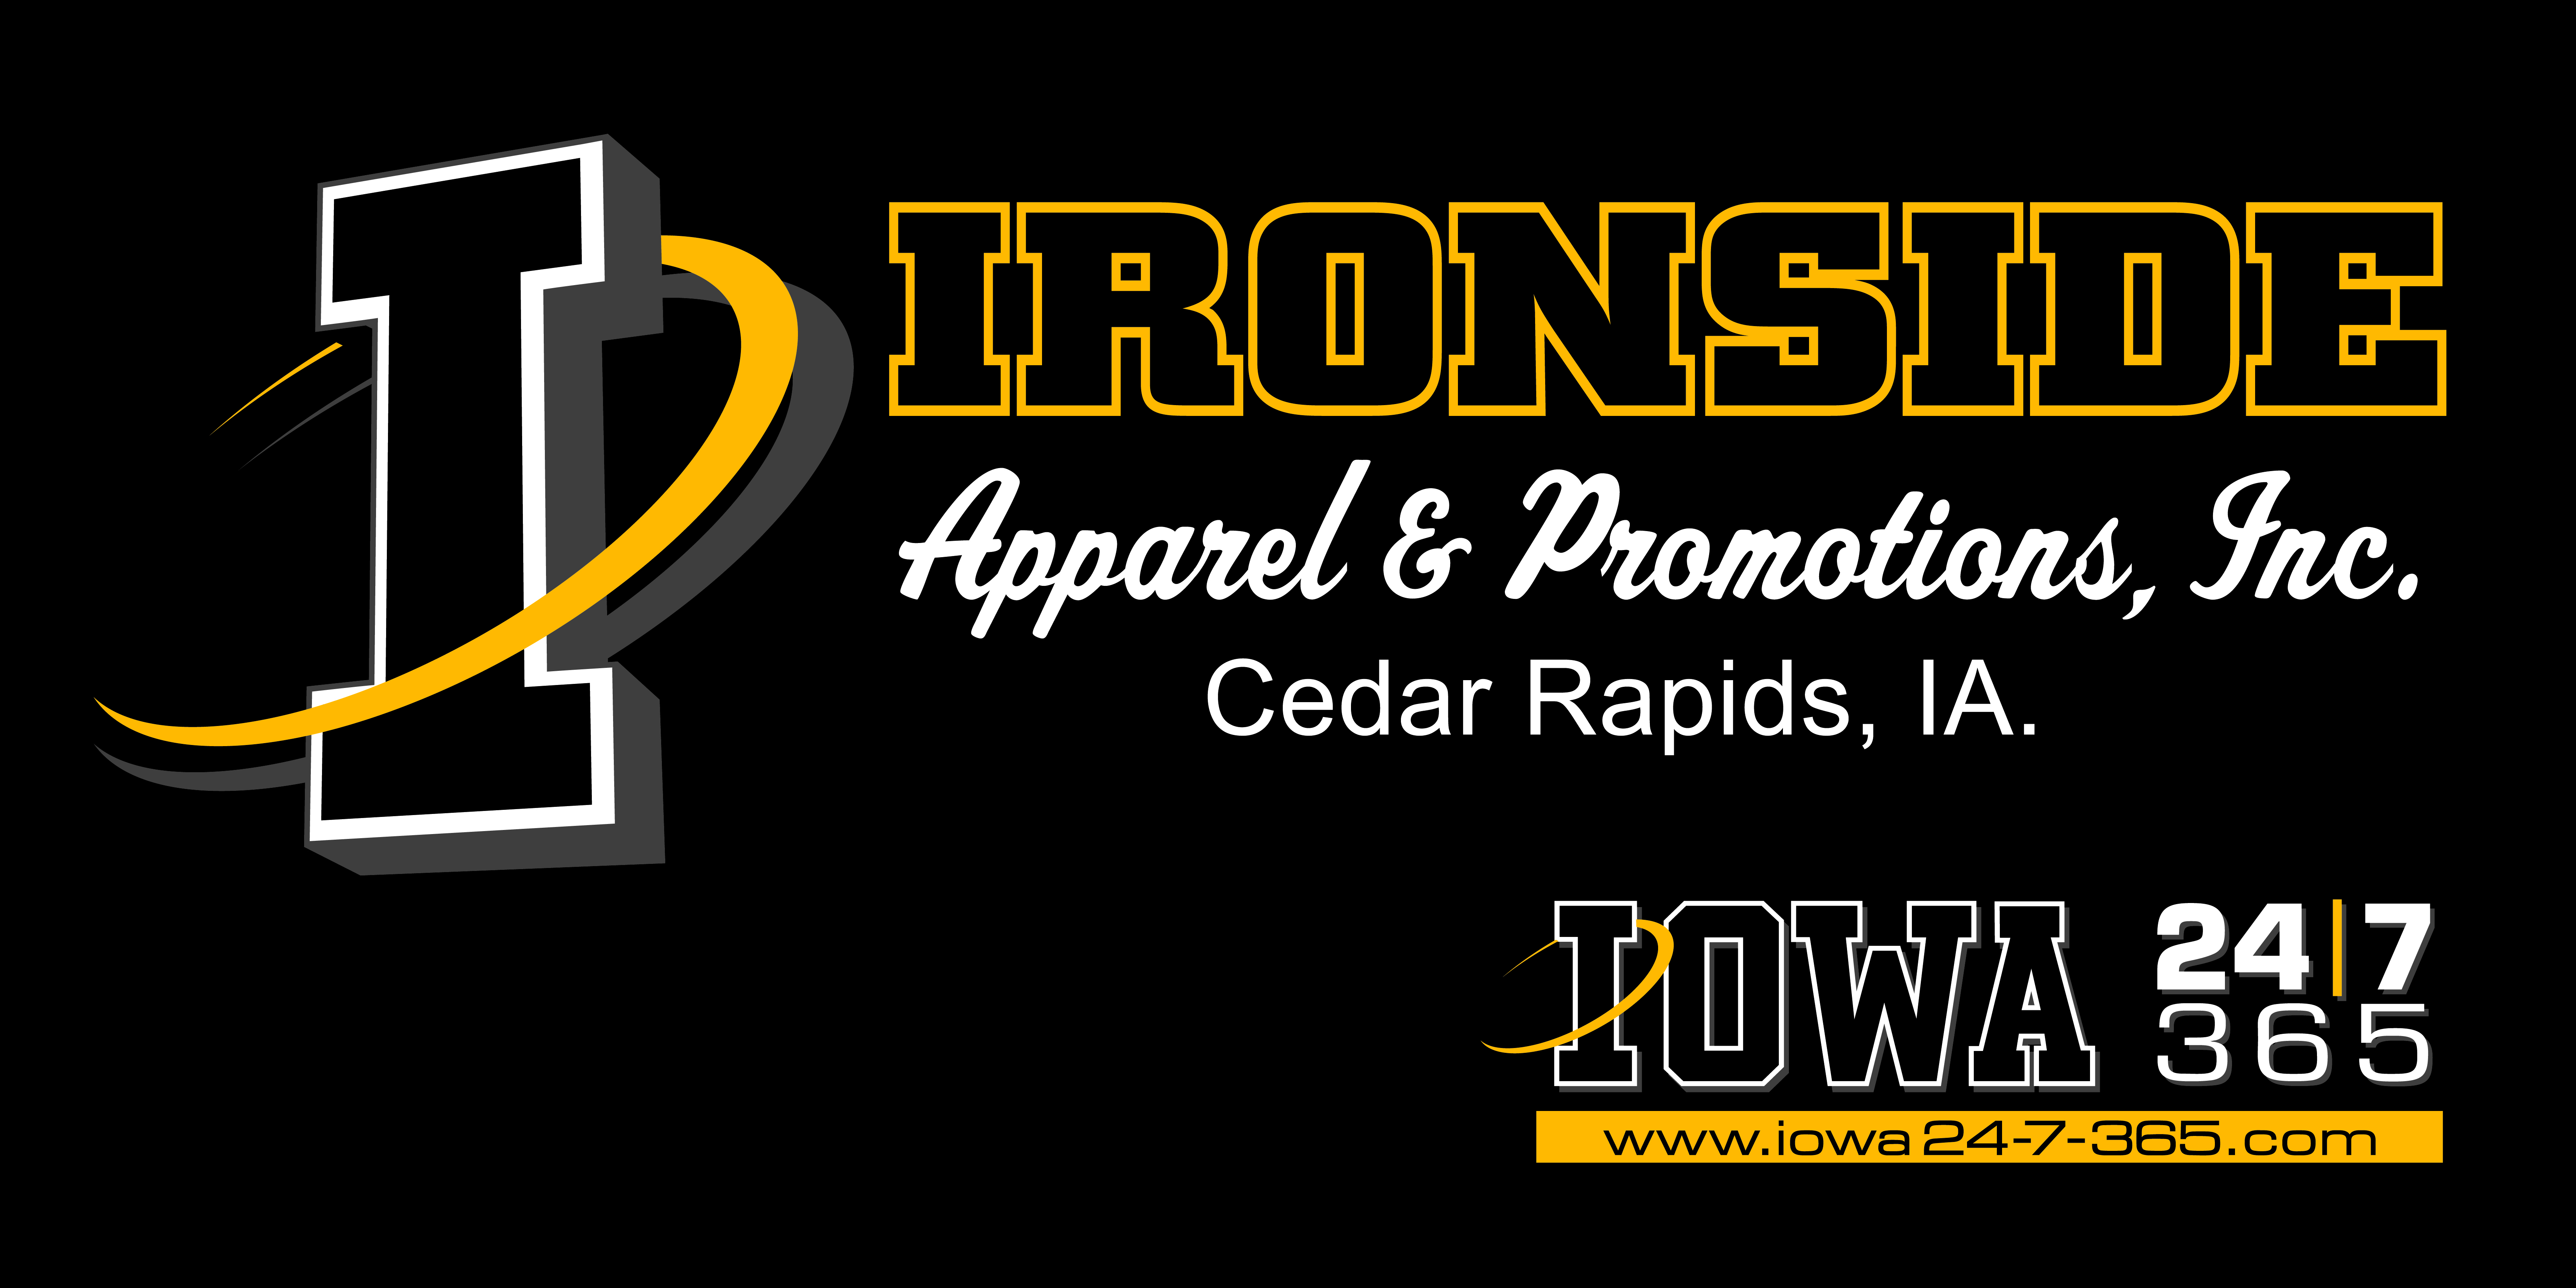 Ironside Apparel and Promotions